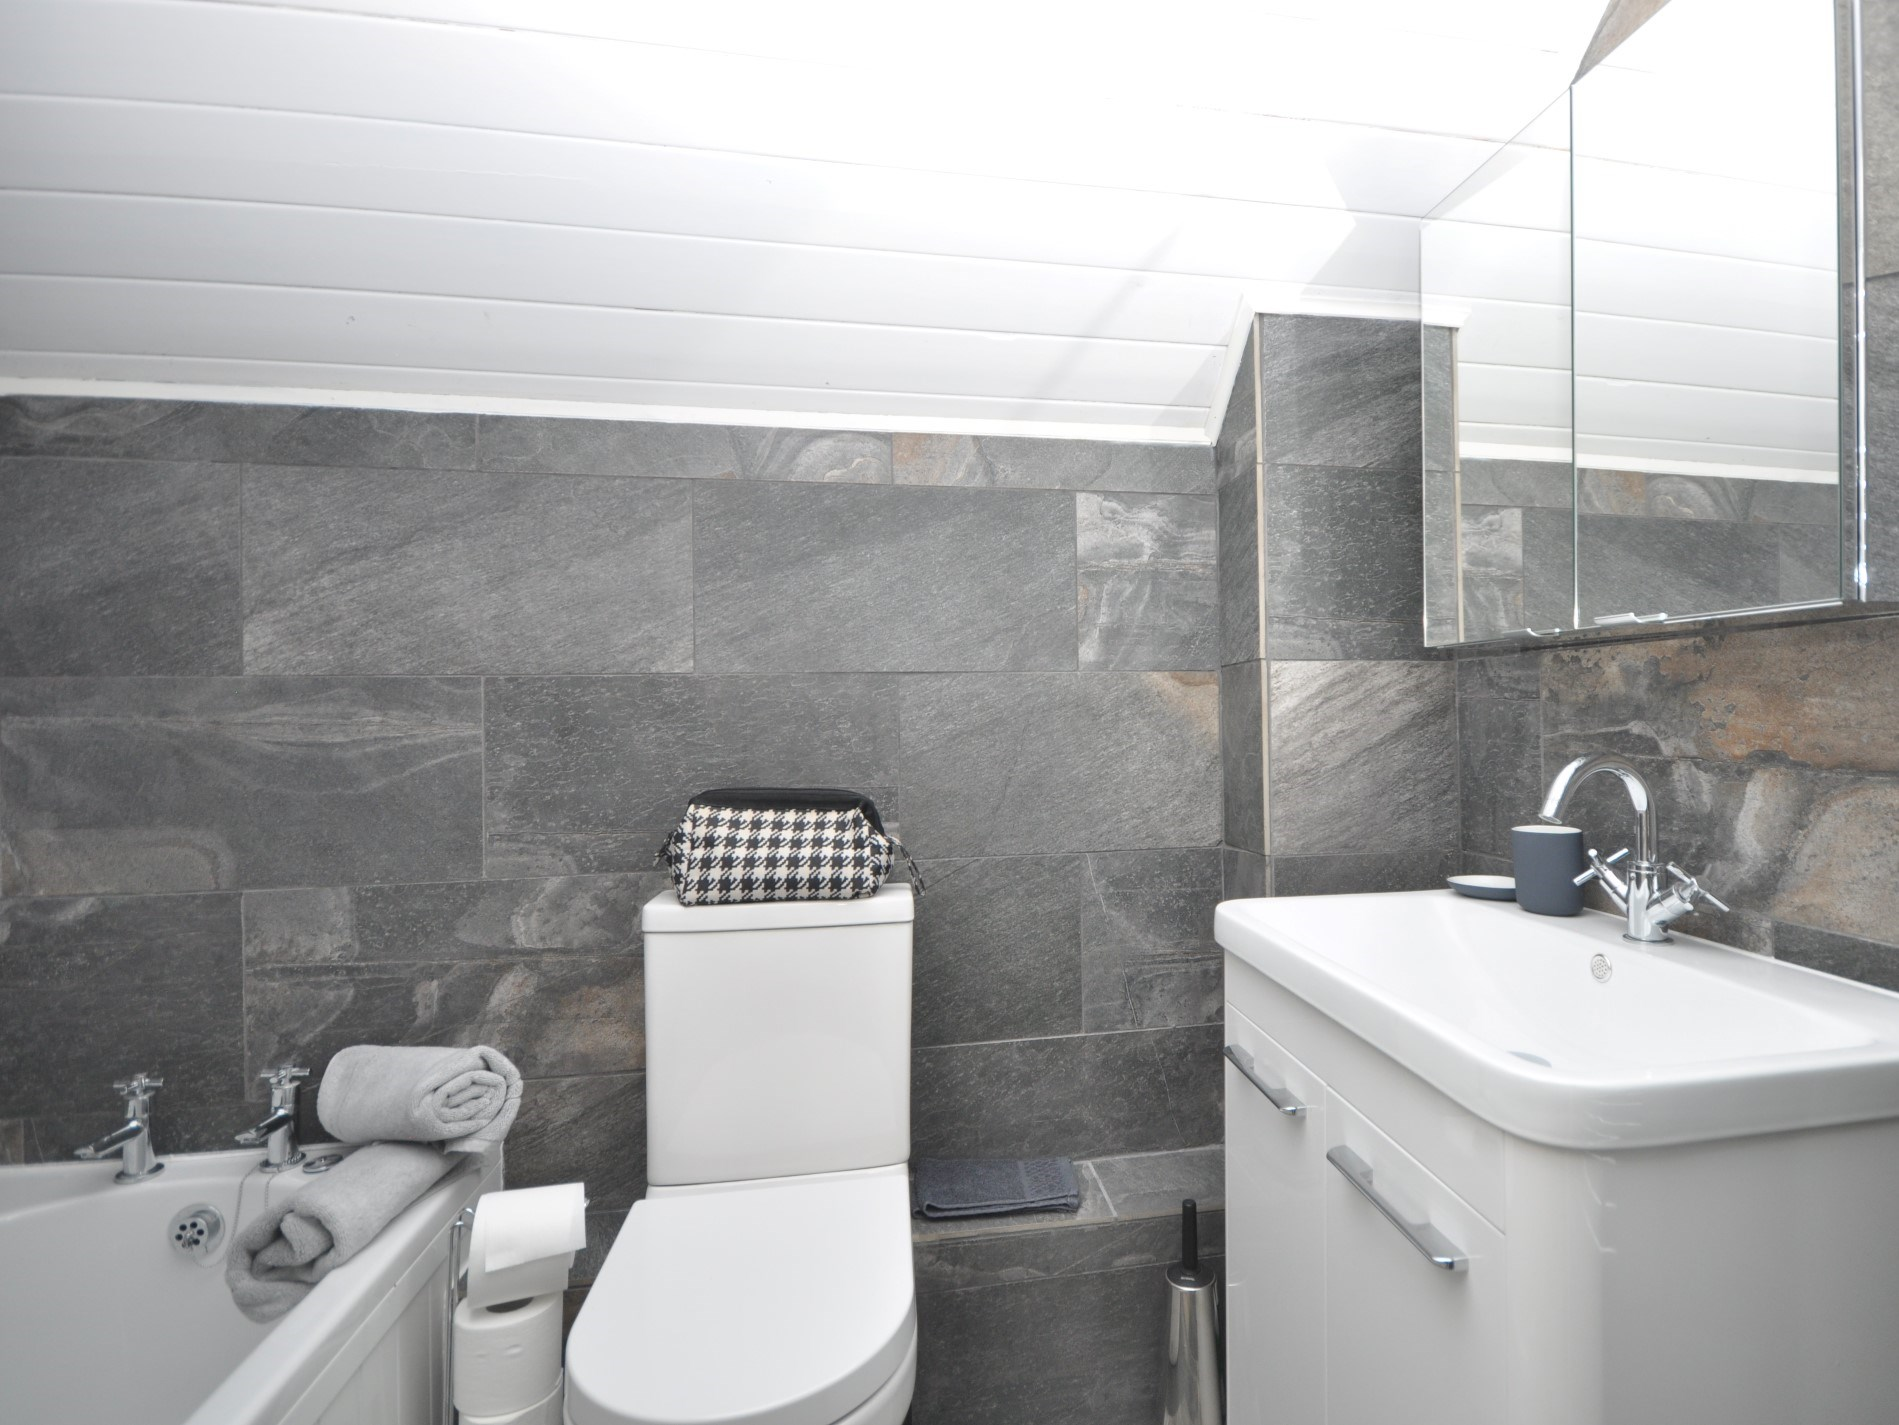 The bathroom with shower over